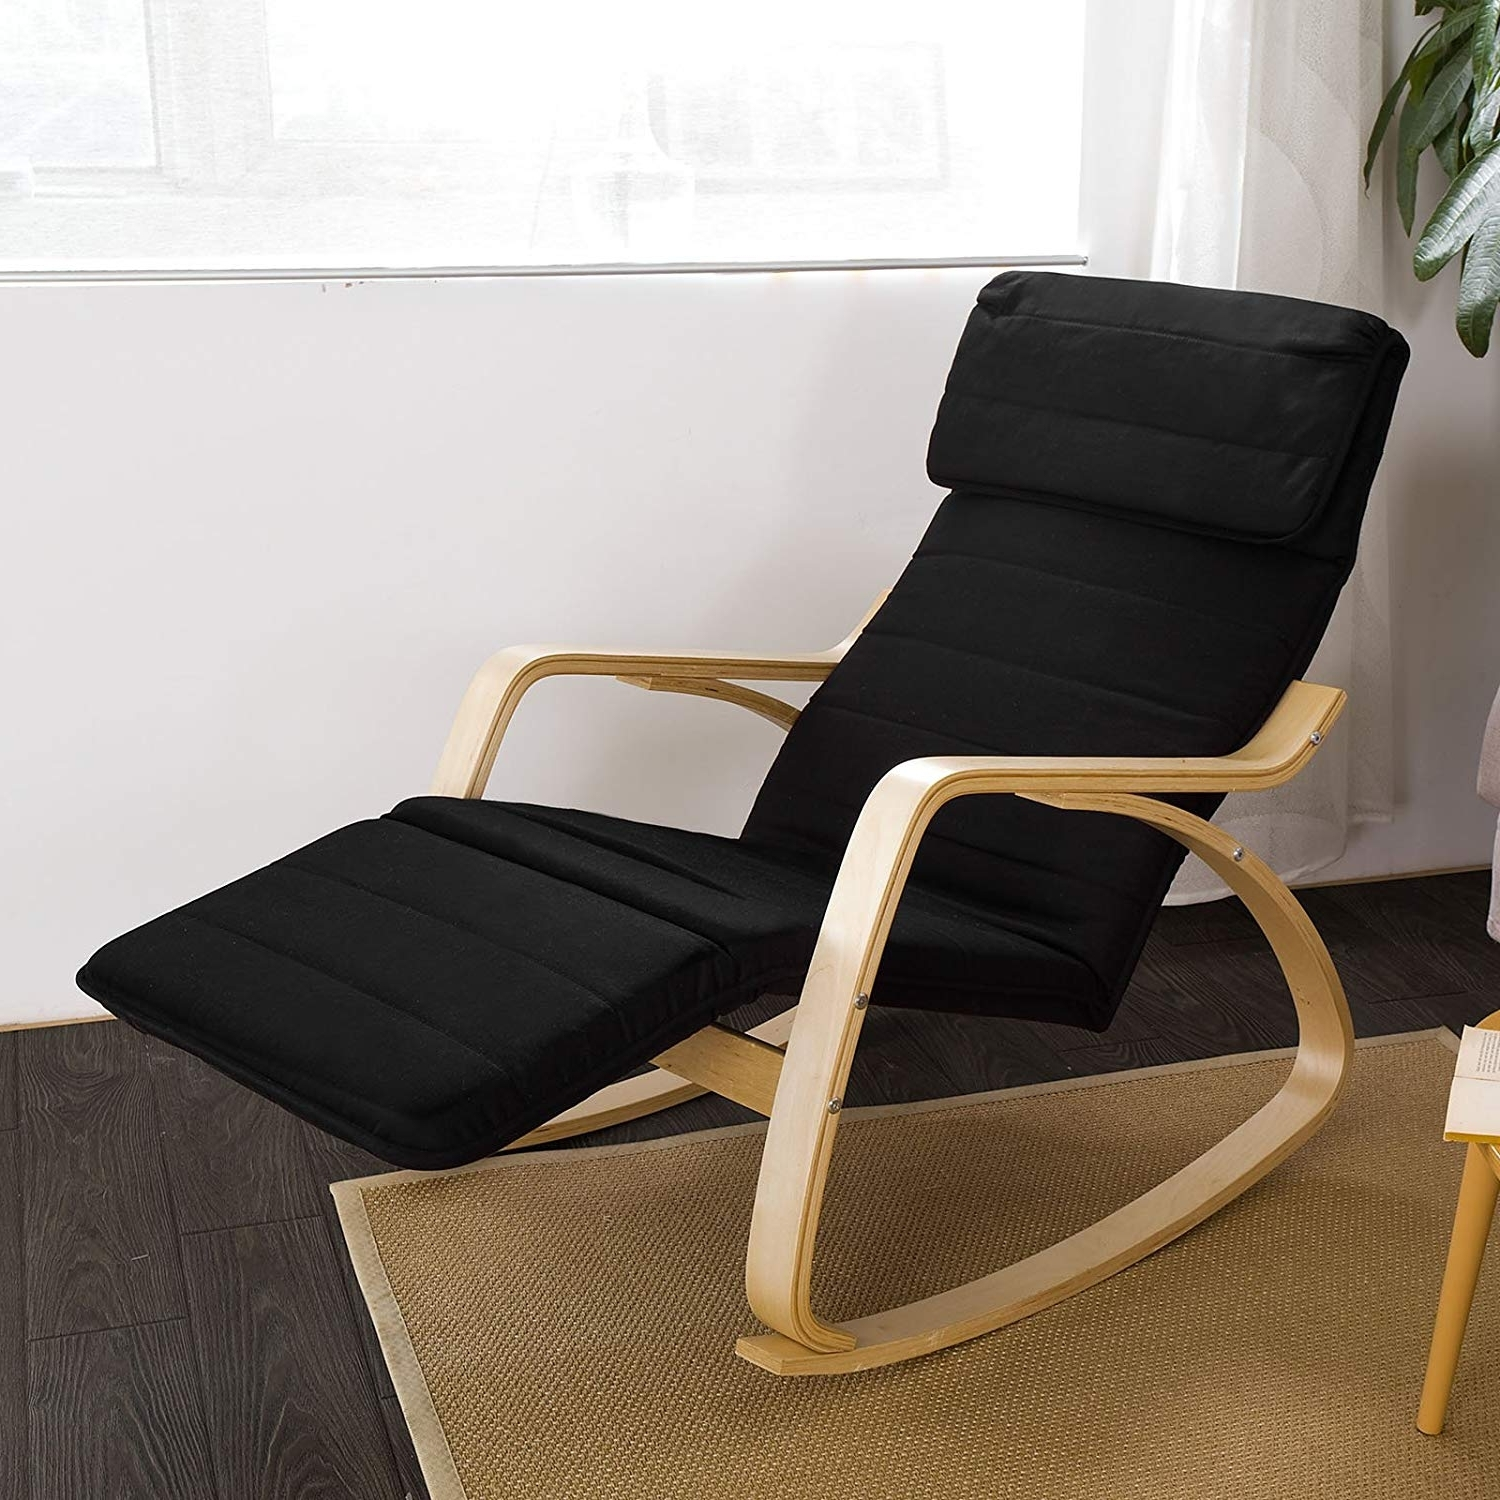 Most Recently Released Amazon Rocking Chairs Intended For Amazon: Haotian Comfortable Relax Rocking Chair With Foot Rest (View 10 of 15)